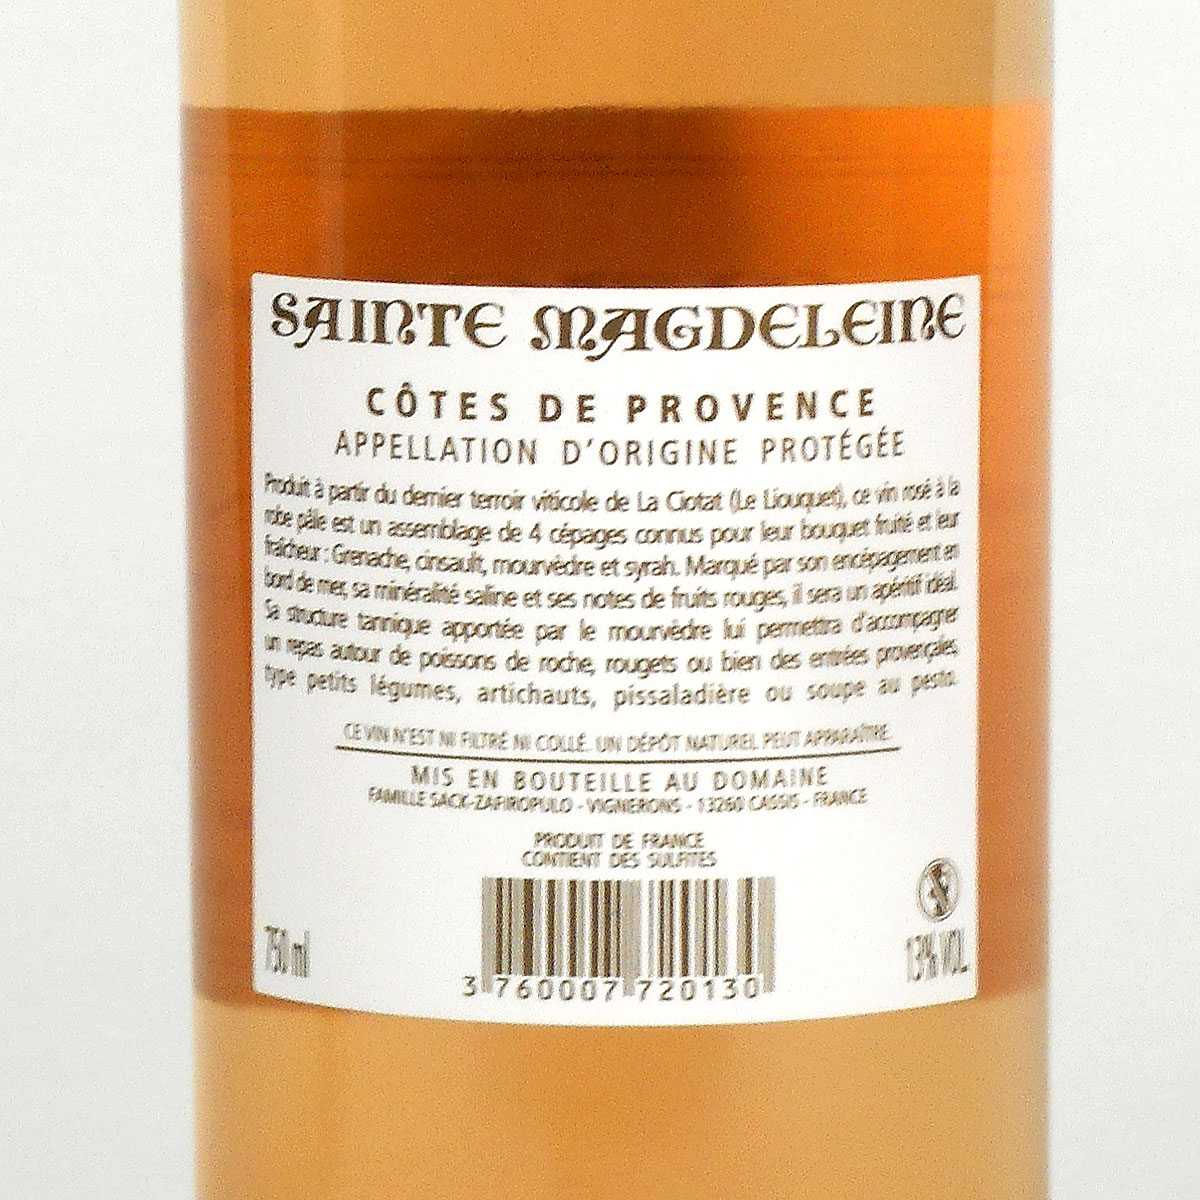 Côtes de Provence: Clos Sainte Magdeleine Rosé 2019 - Bottle Rear Label